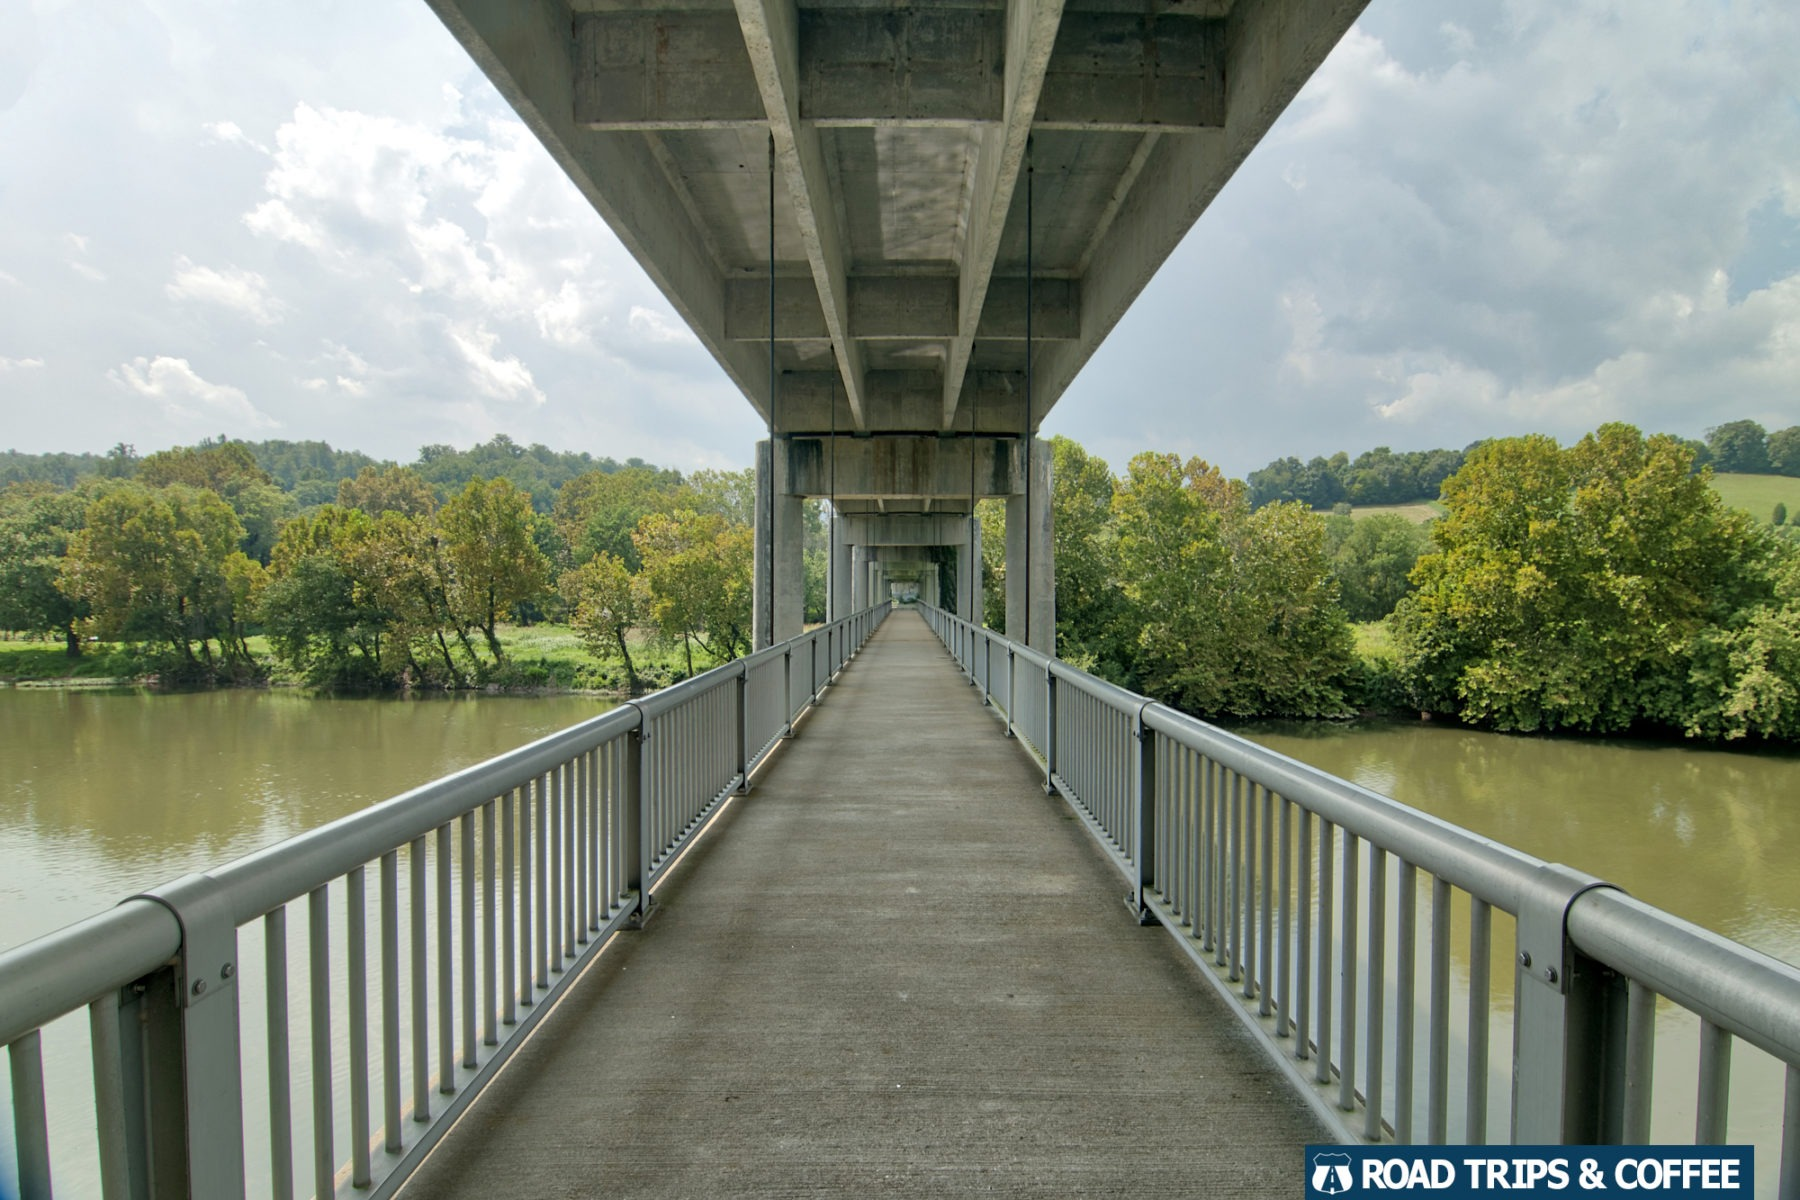 A long pedestrian bridge crossing the James River on the Blue Ridge Parkway in Virginia